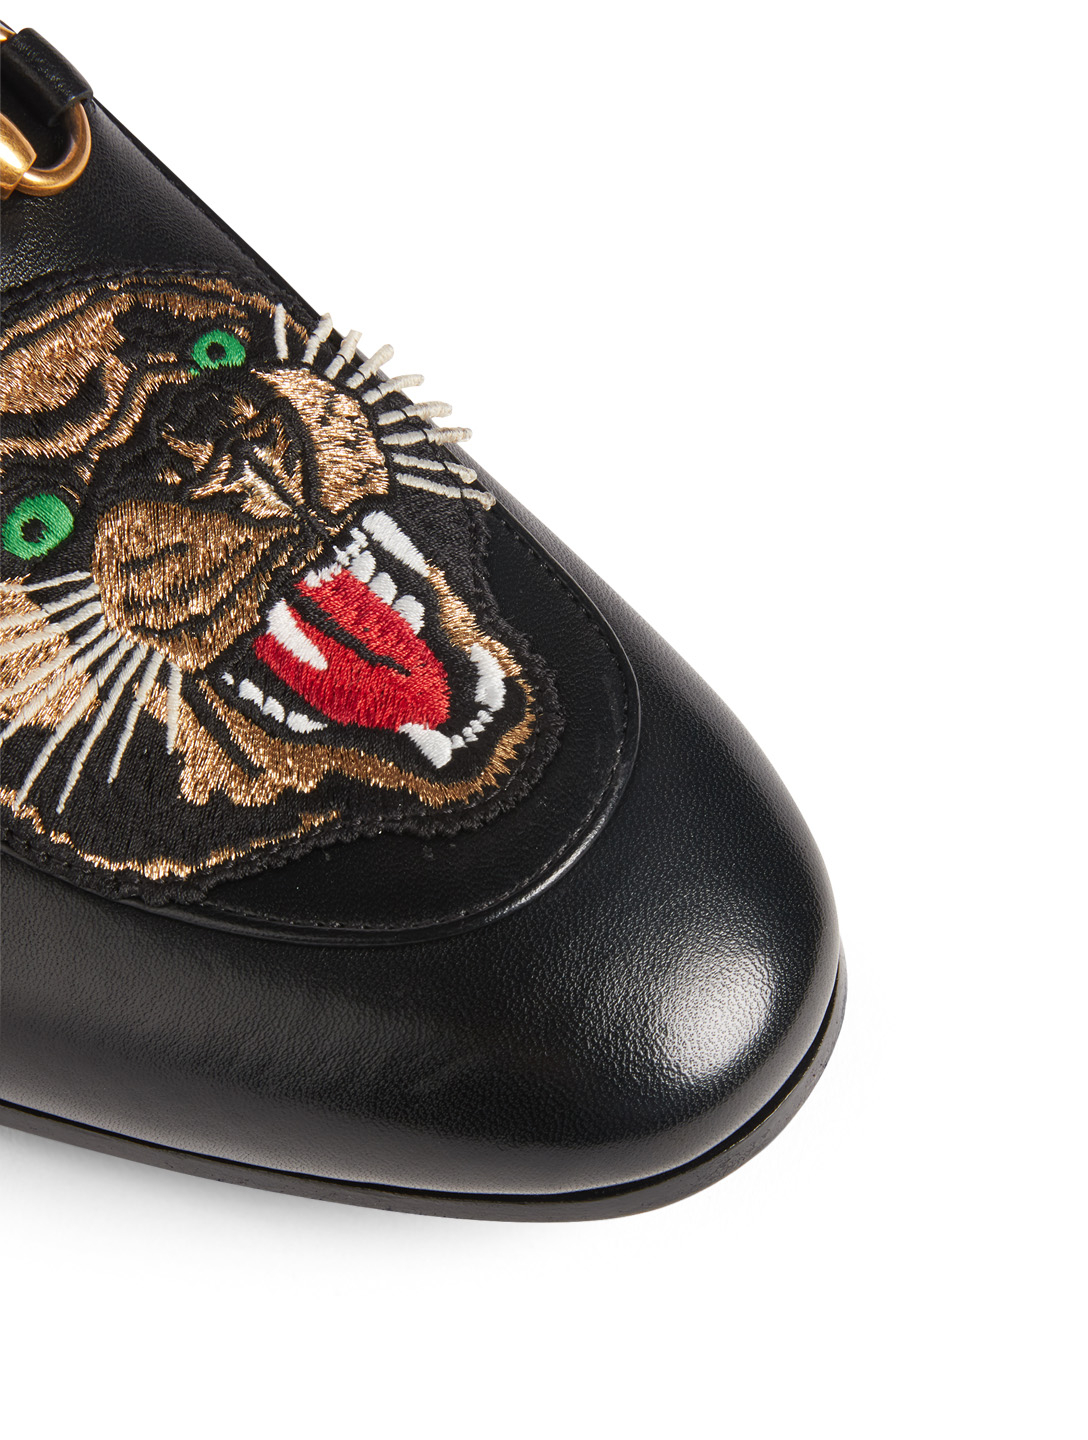 GUCCI Brixton Leather Loafers With Panther Patch Designers Black